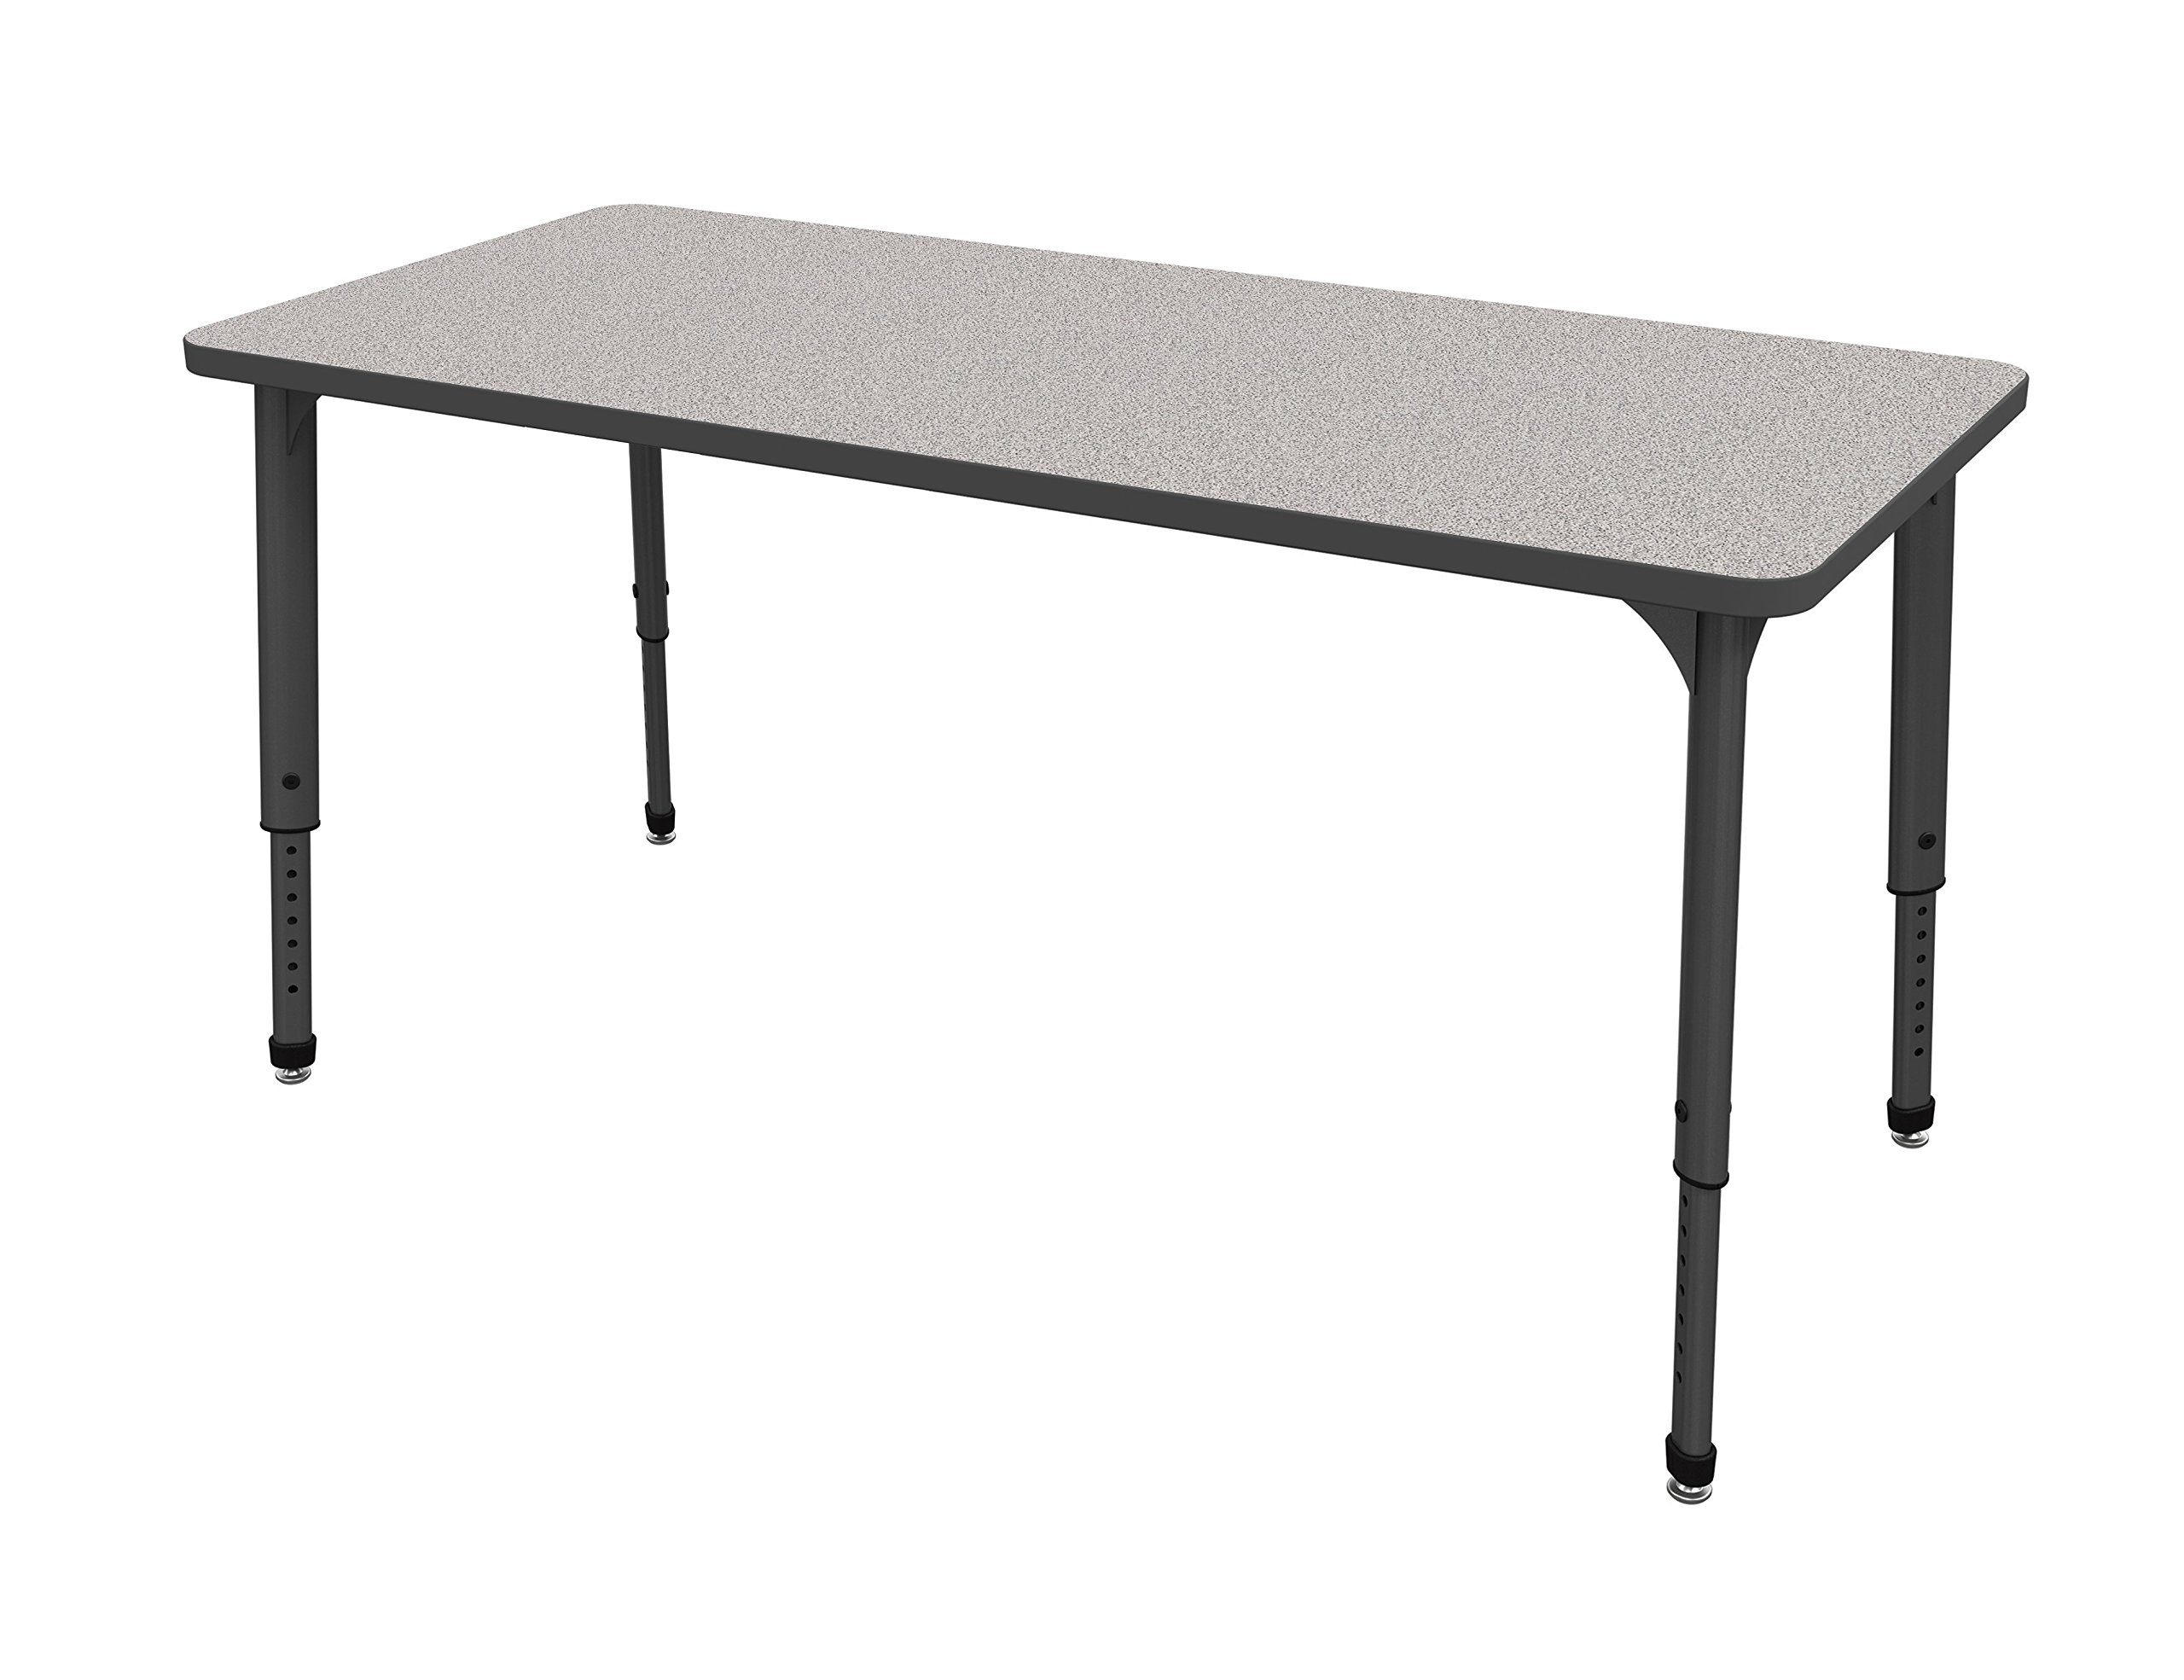 Marco Group 38-2238-77-BLK 30'' x 72'' Classroom Tables Adjustable Height, (21''-30''), Gray Nebula-Top, Black-Trim, Black-Leg by Marco Group